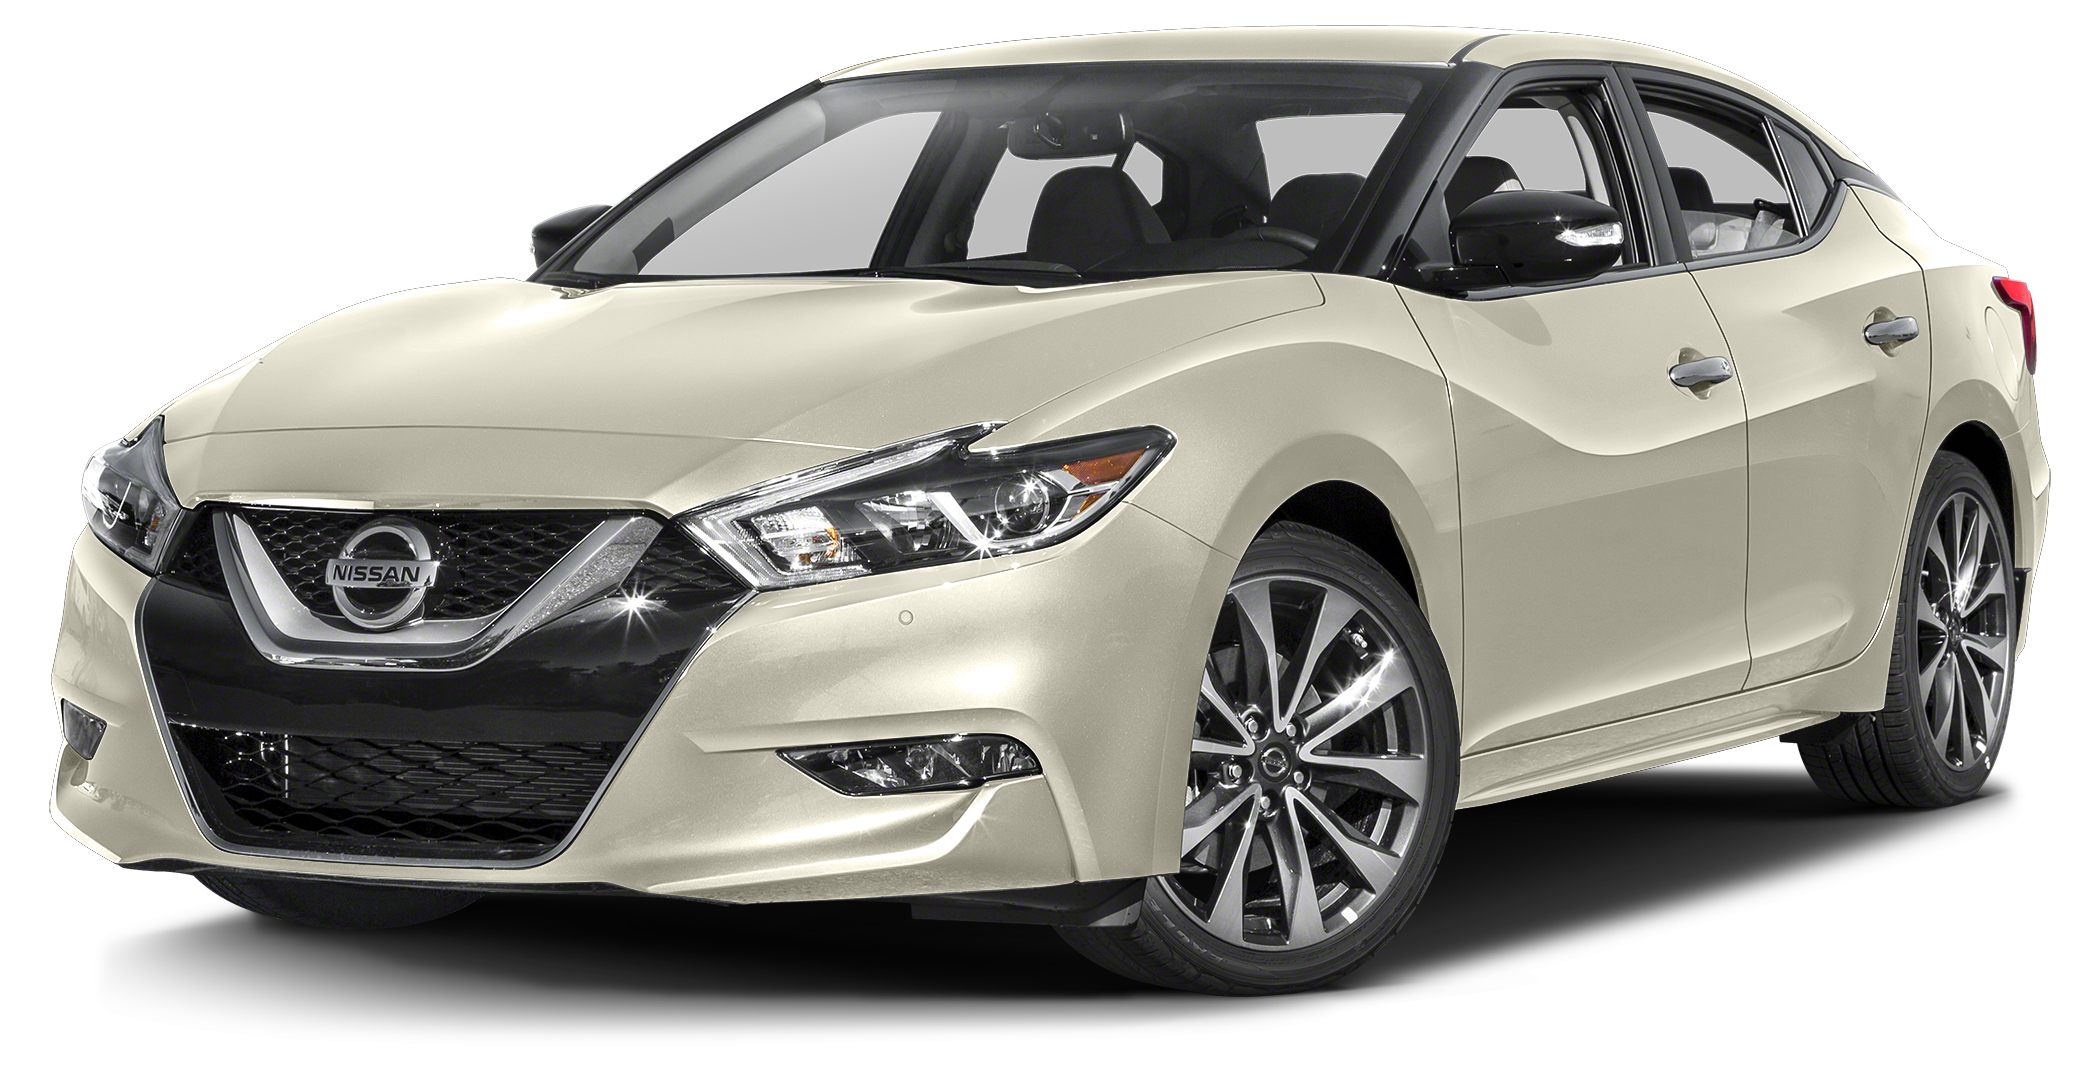 2017 Nissan Maxima 35 SR Miles 7Color Pearl White Stock 7170291 VIN 1N4AA6AP4HC399253